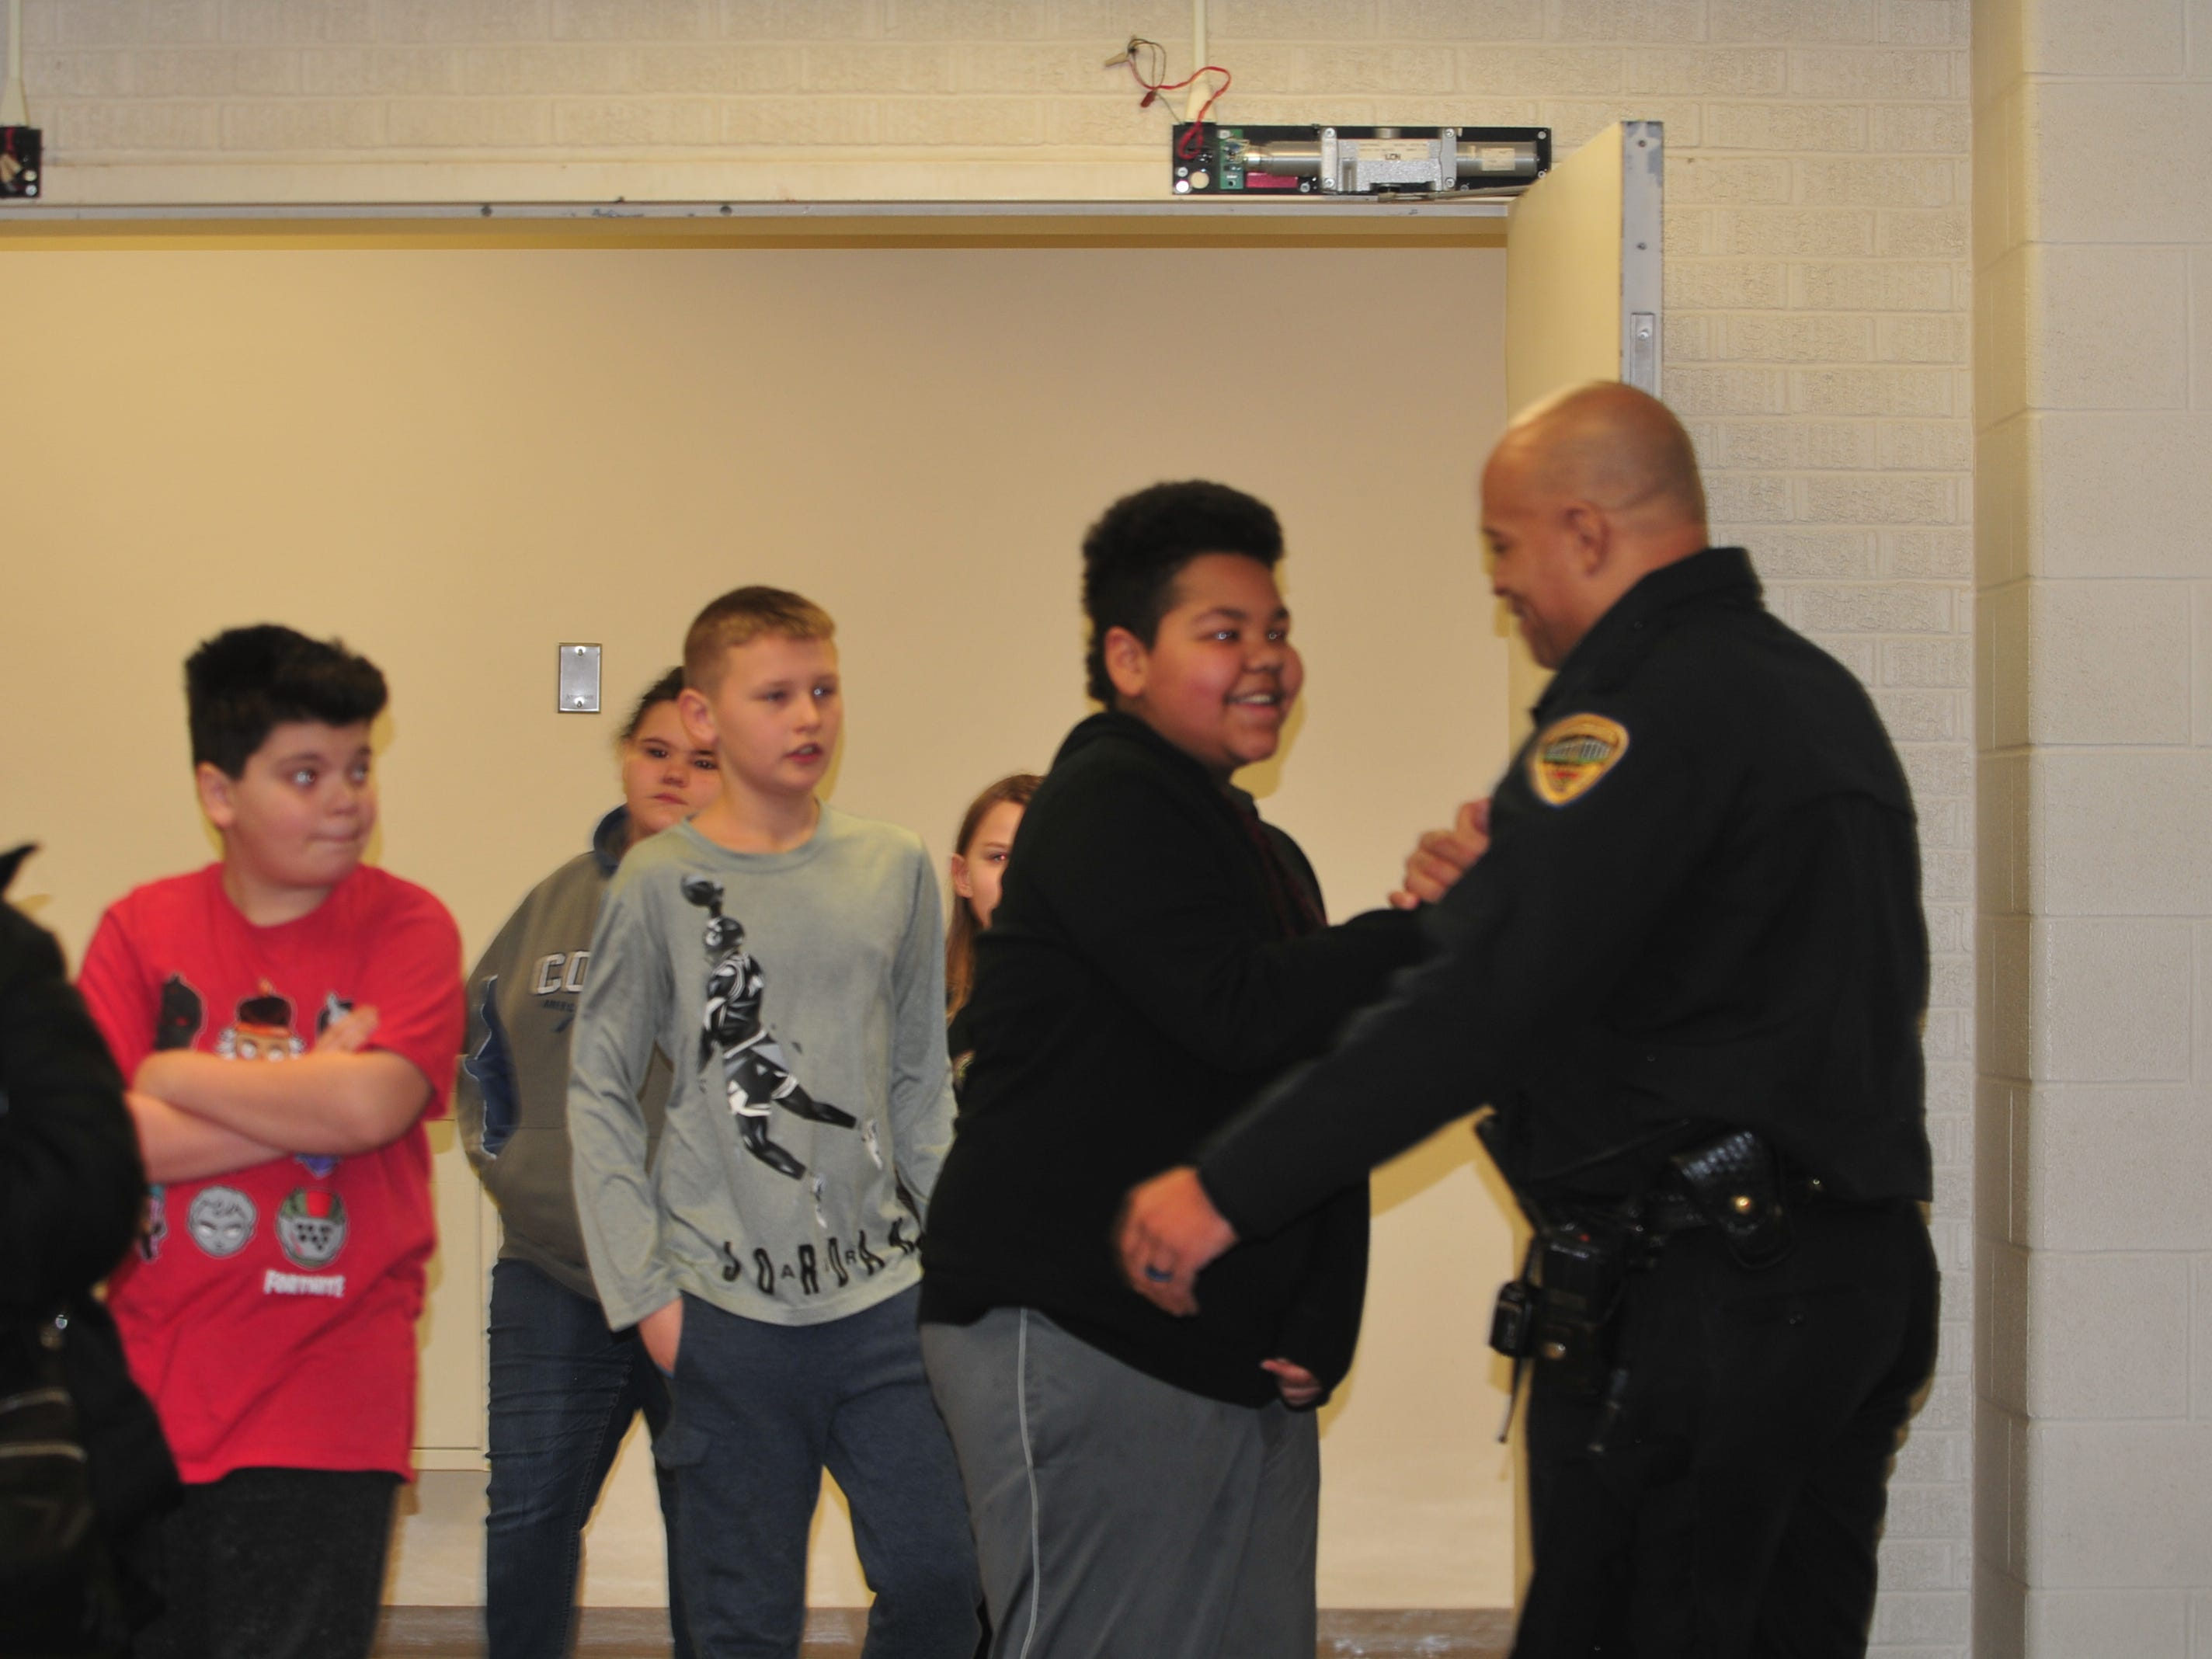 Officer Tim Davis greets students as they file into the gym Wednesday.